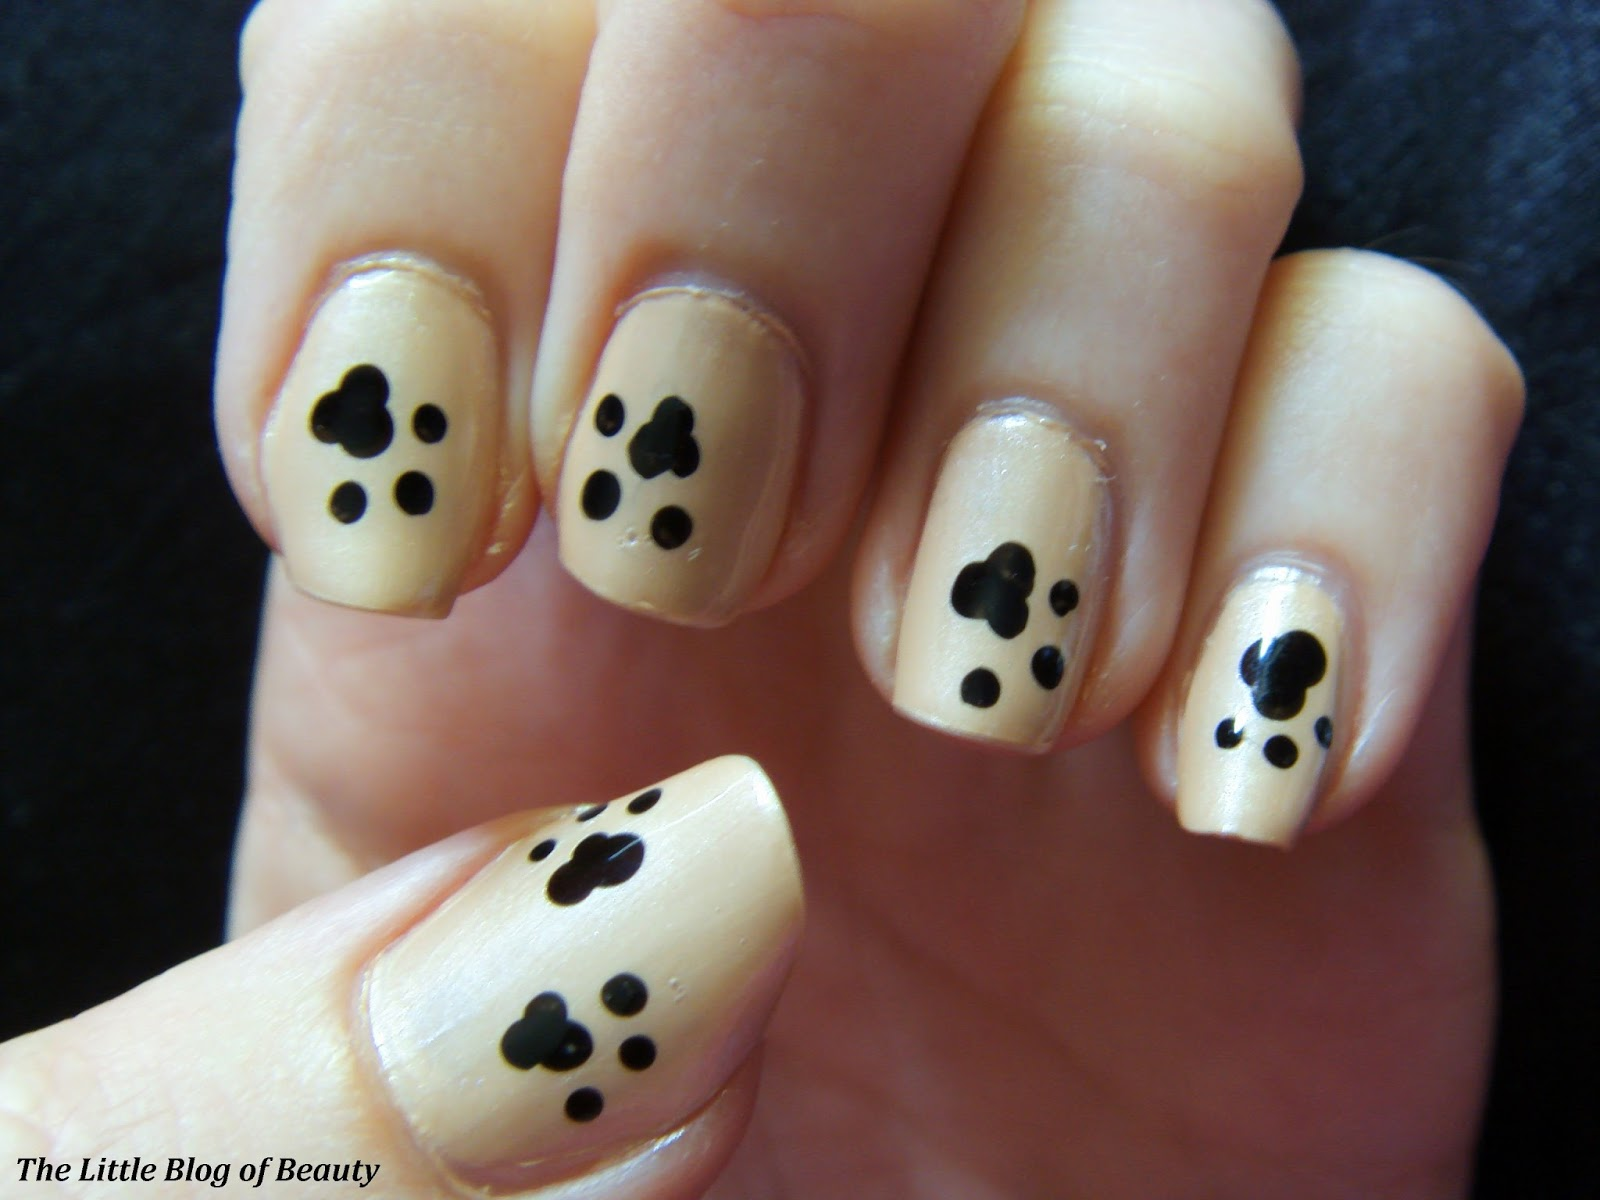 Nail art - Paw prints in the sand | The Little Blog of Beauty